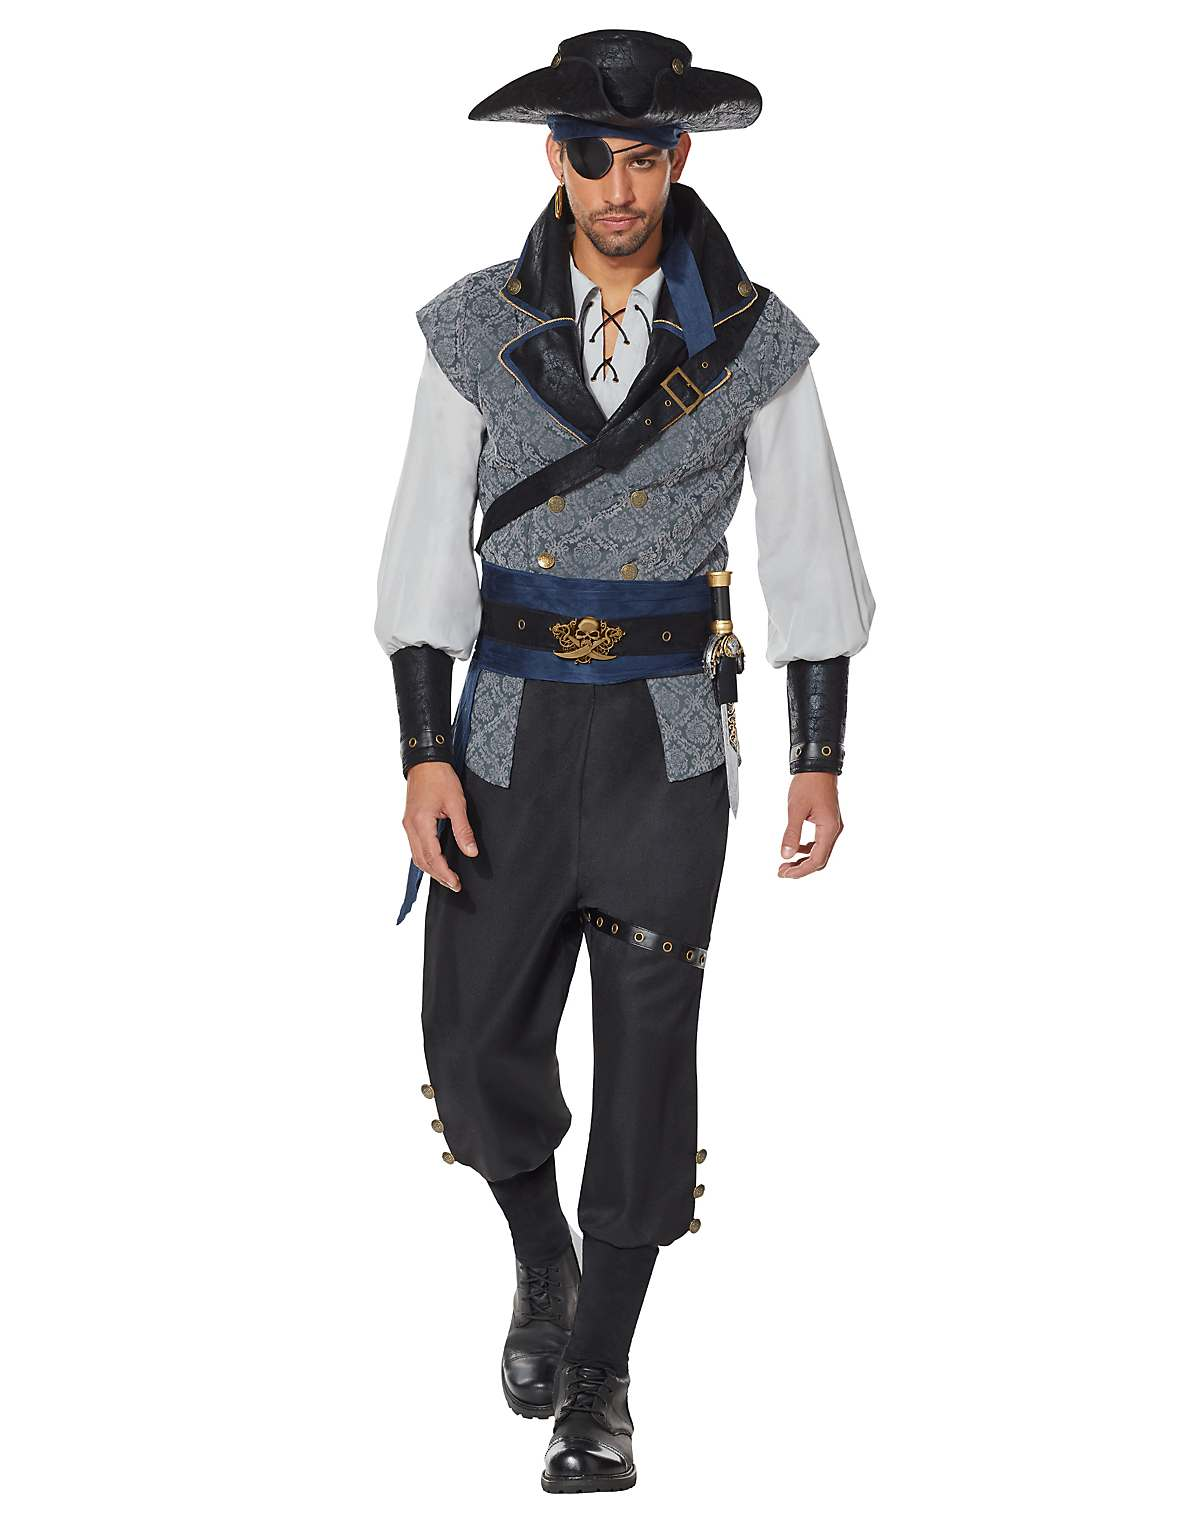 Adult Pirate Costume - The Signature Collection